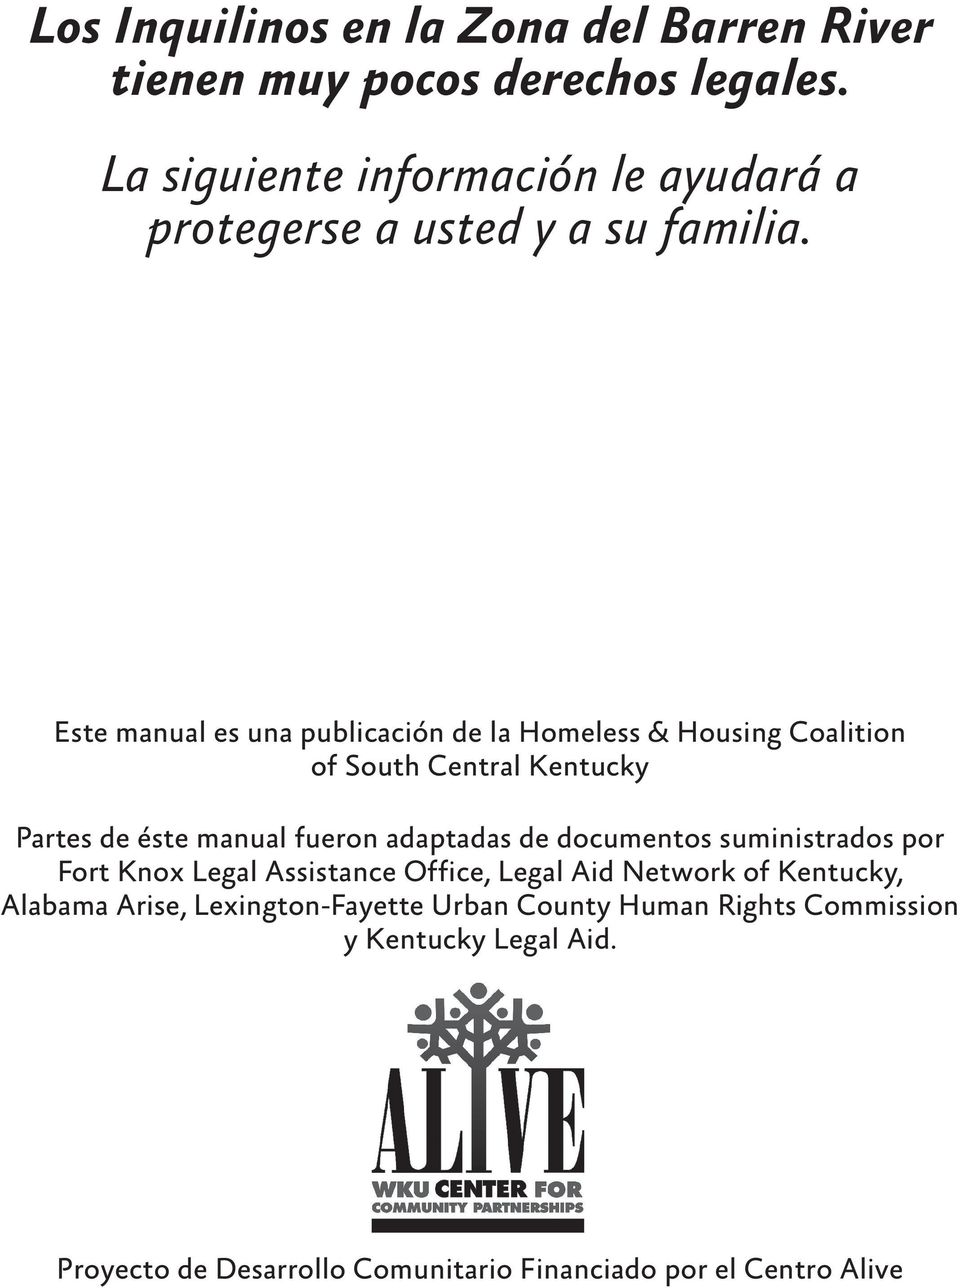 Este manual es una publicación de la Homeless & Housing Coalition of South Central Kentucky Partes de éste manual fueron adaptadas de